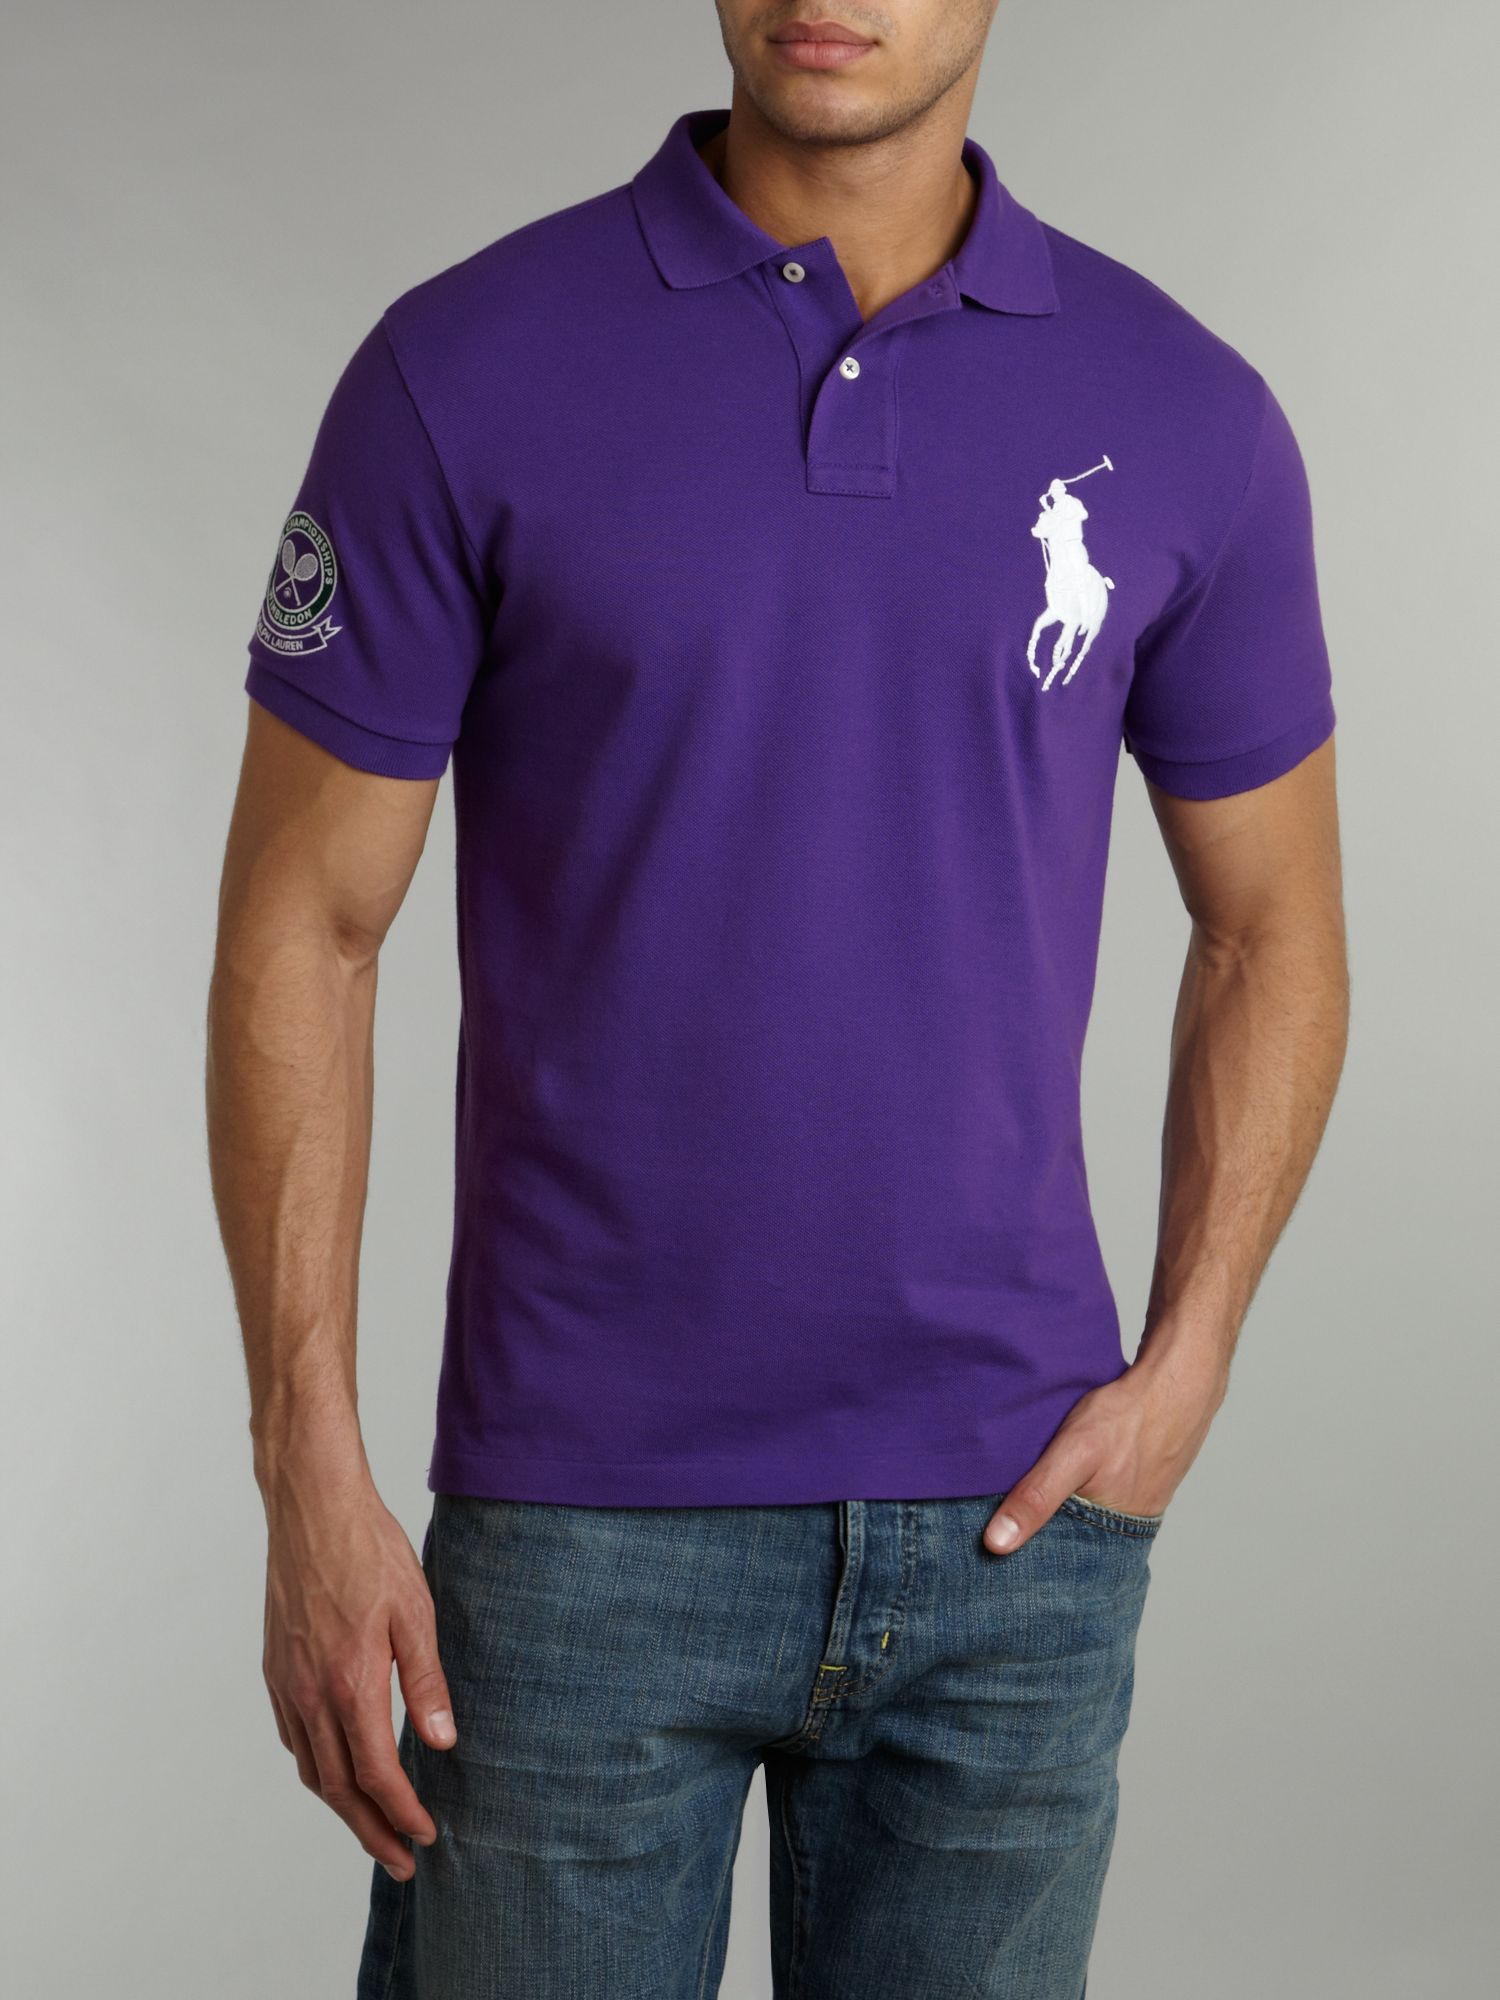 Pin New Big Pony Ralph Lauren Polo Shirts Men T Thorold On